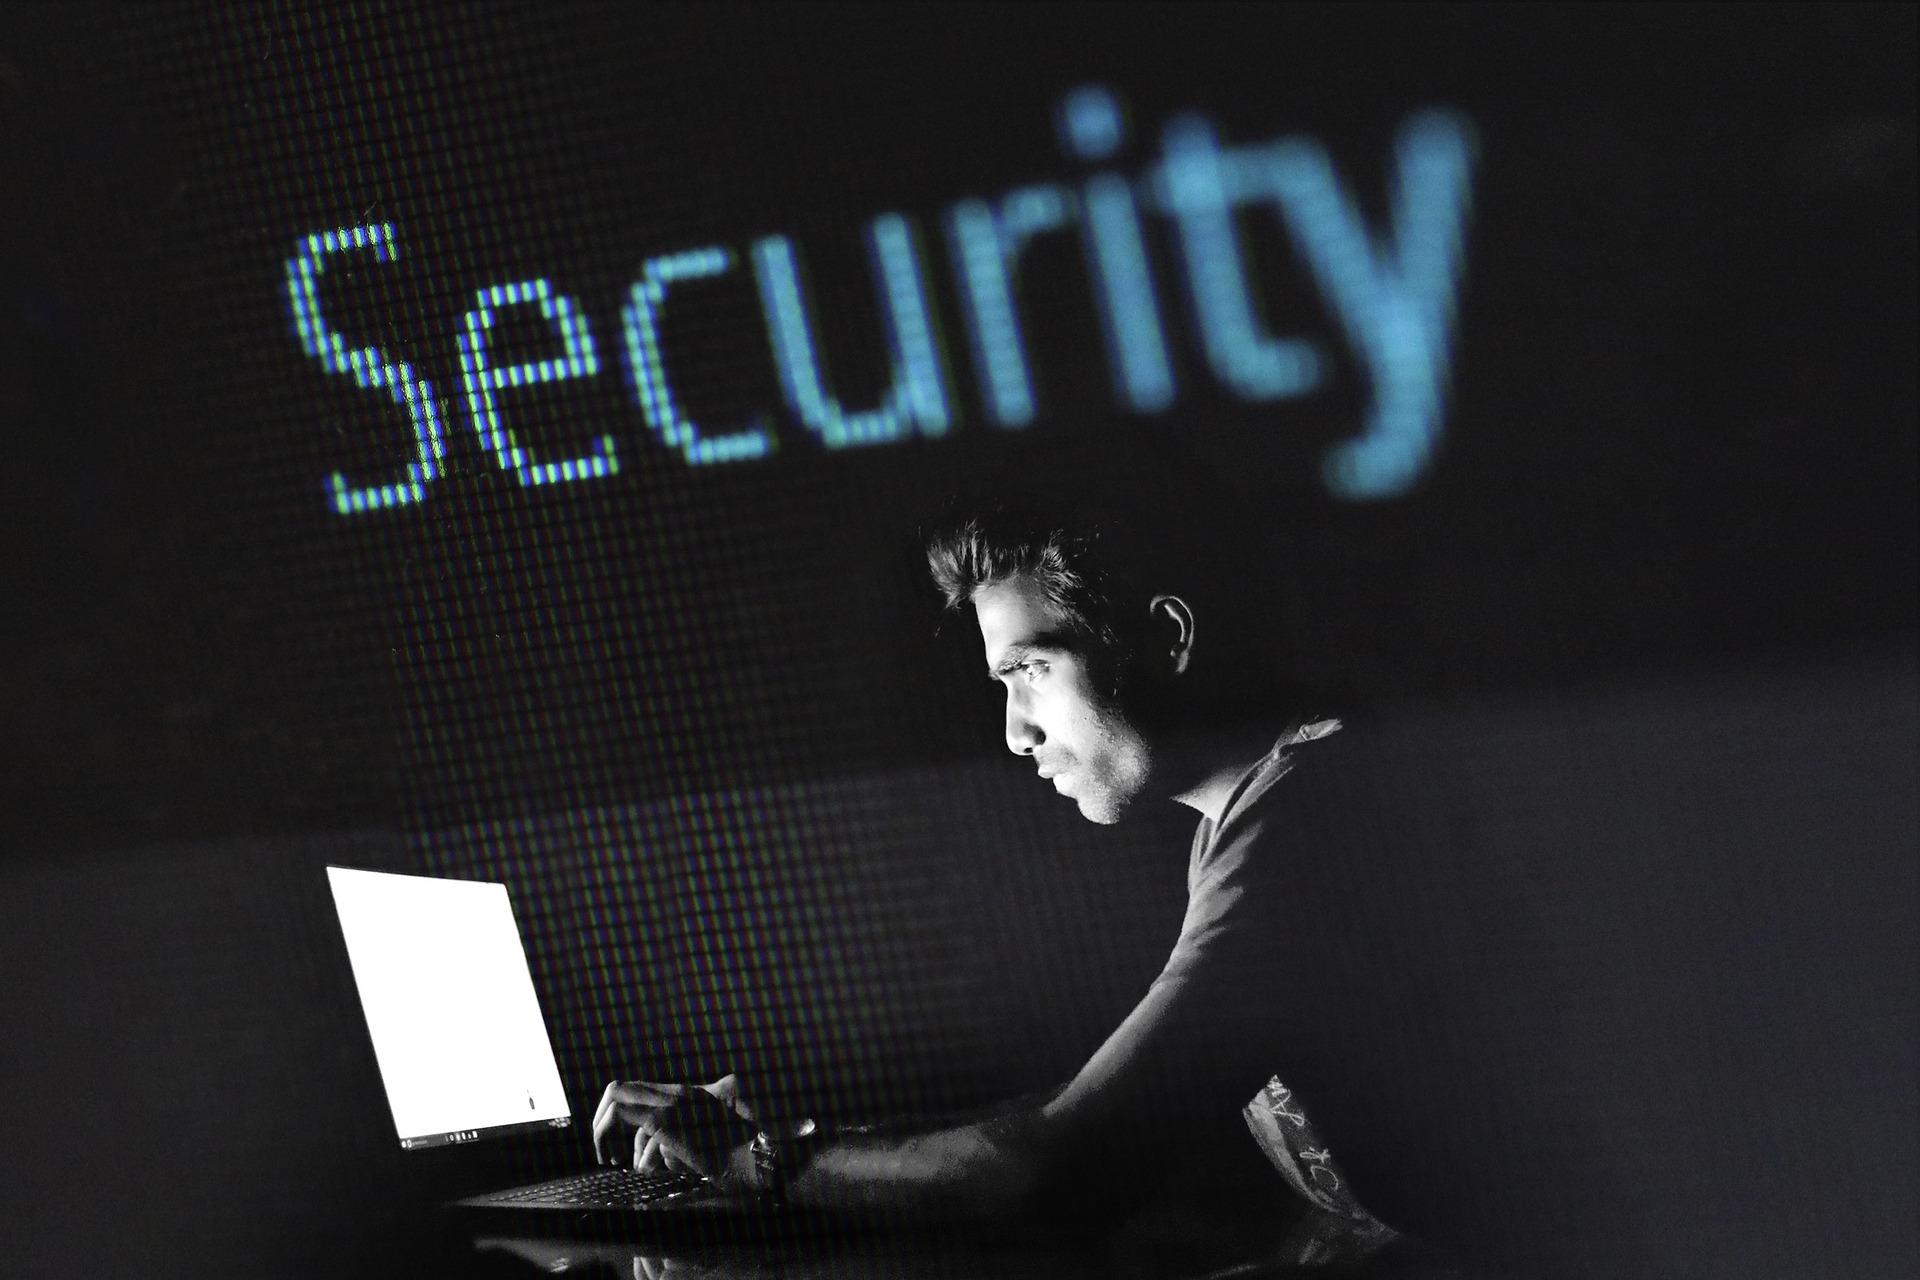 black and white image of a man looking at a bright computer screen with blue text that says security at the top